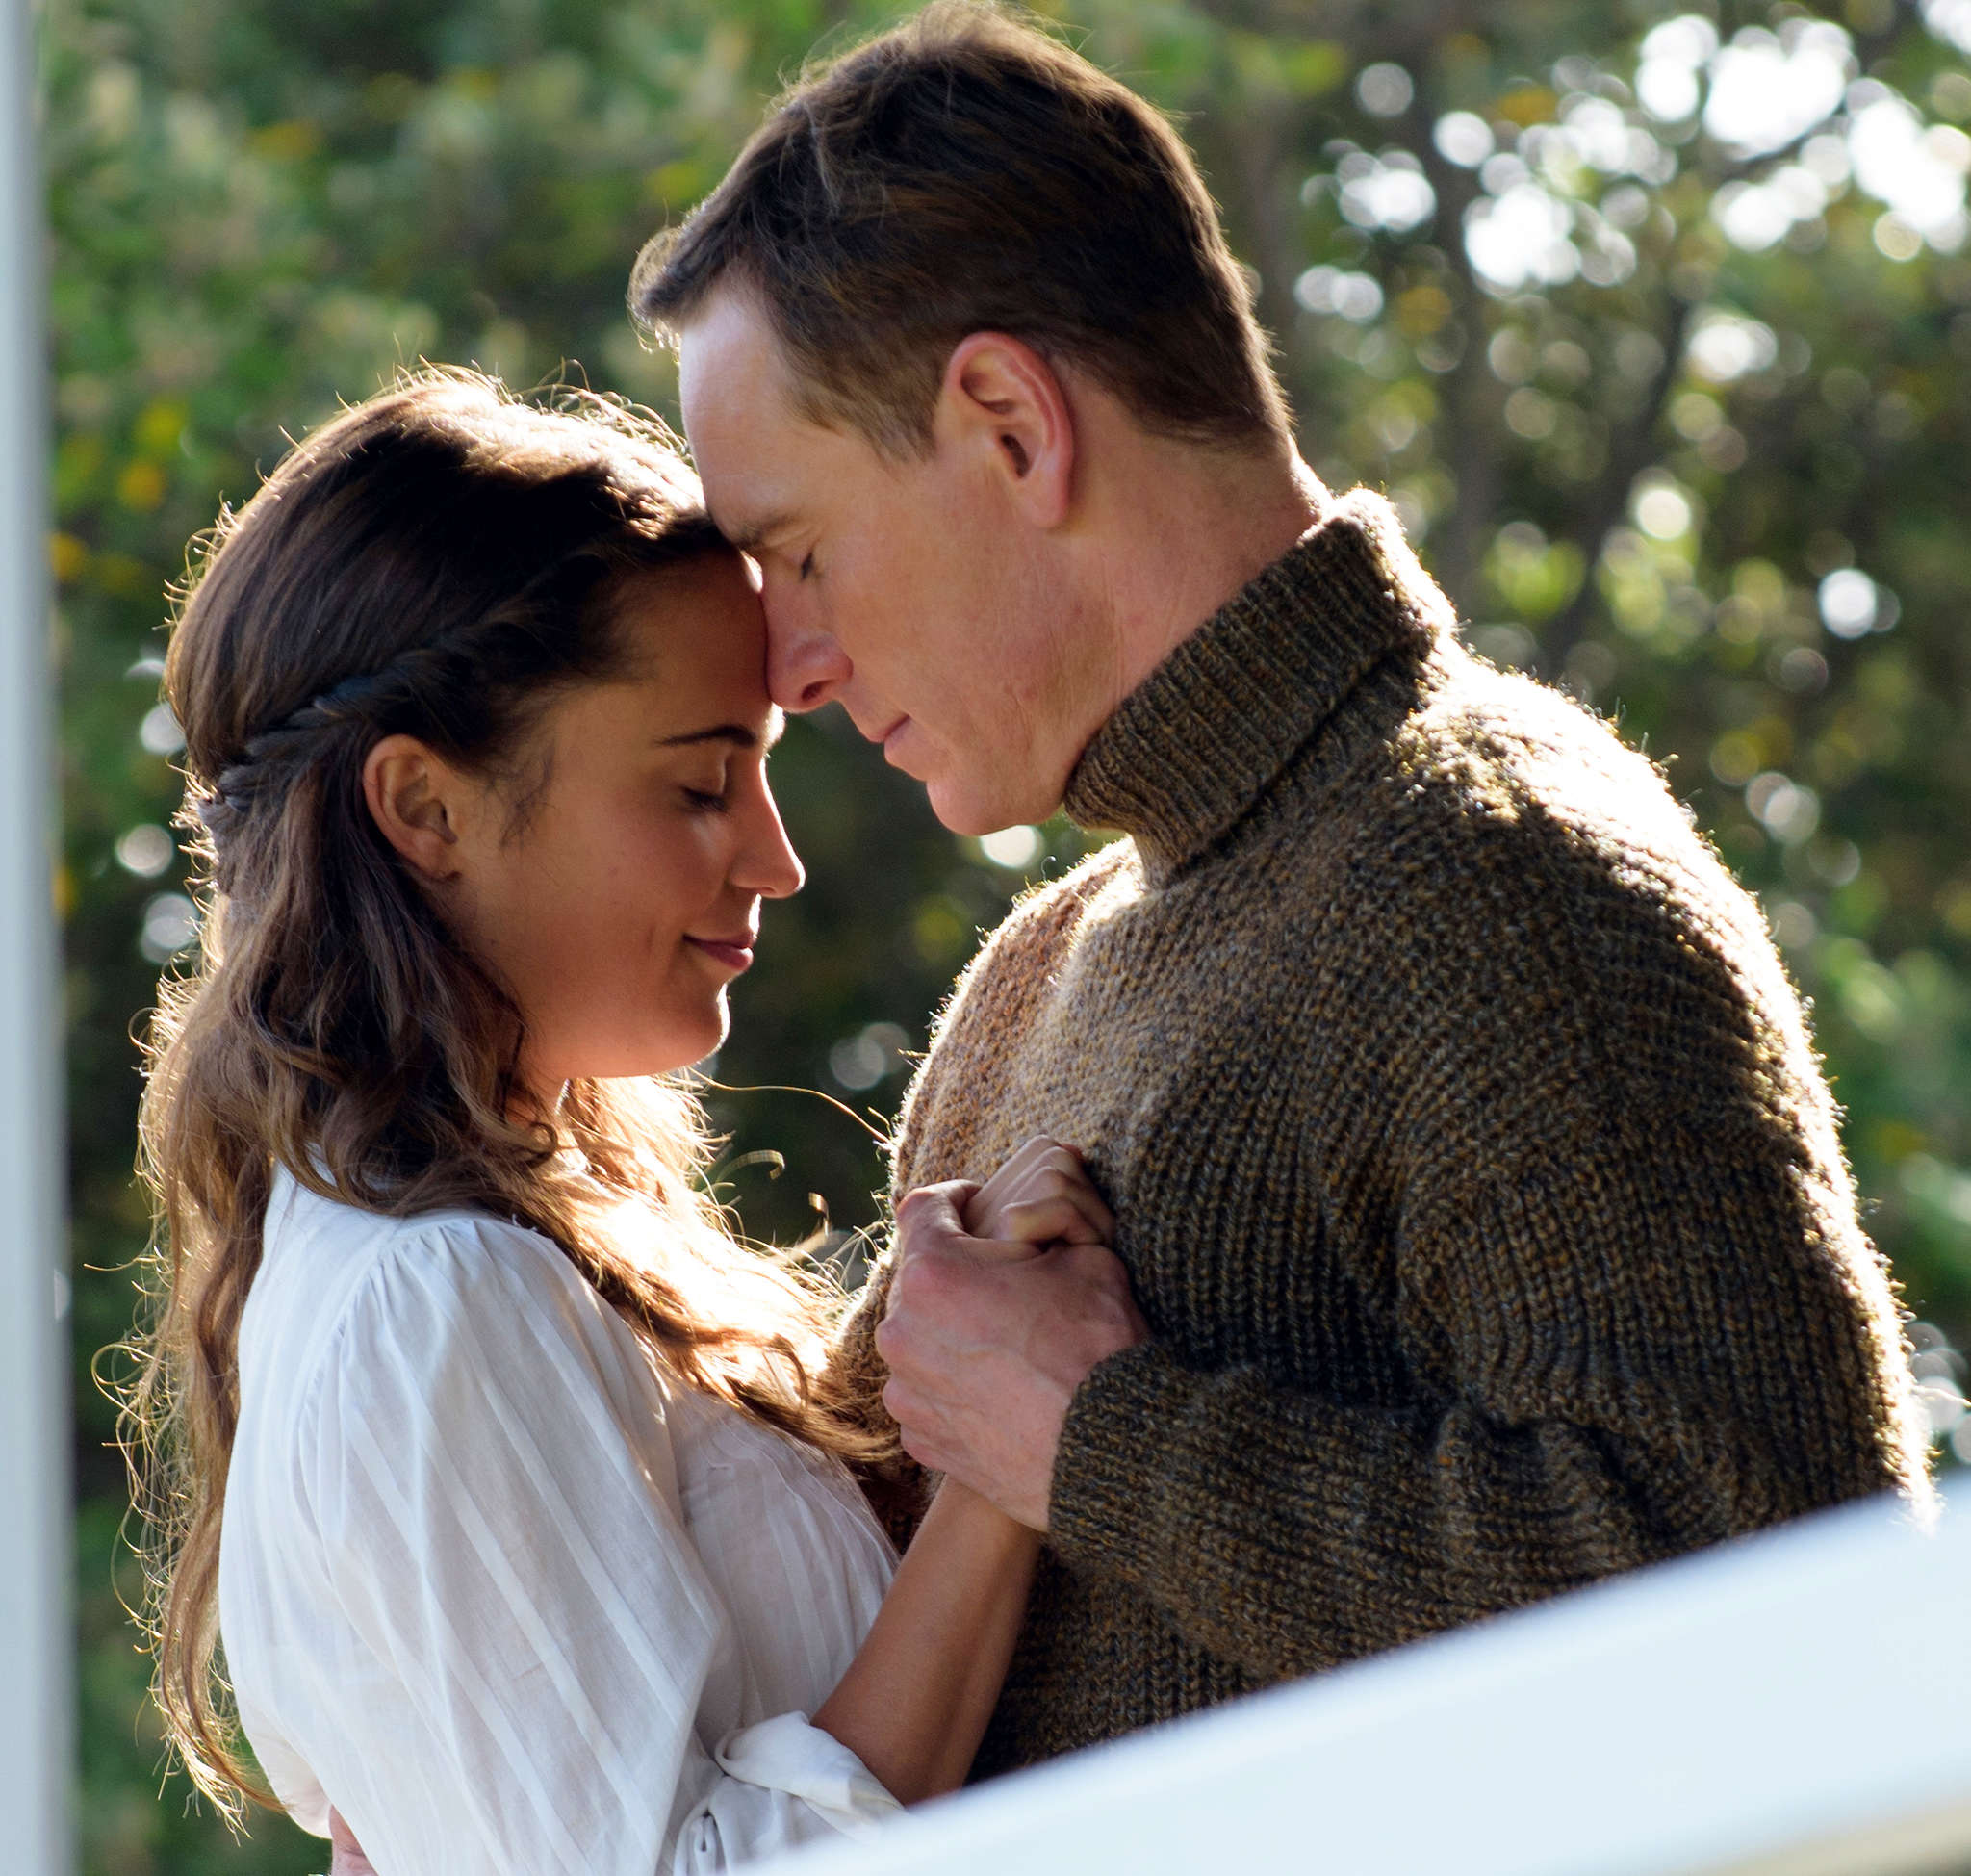 """Alicia Vikander and Michael Fassbender are the finely chiseled, perfectly lighted husband and wife with a secret in """"The Light Between Oceans,"""" adapted from the best-seller by M.L. Stedman."""